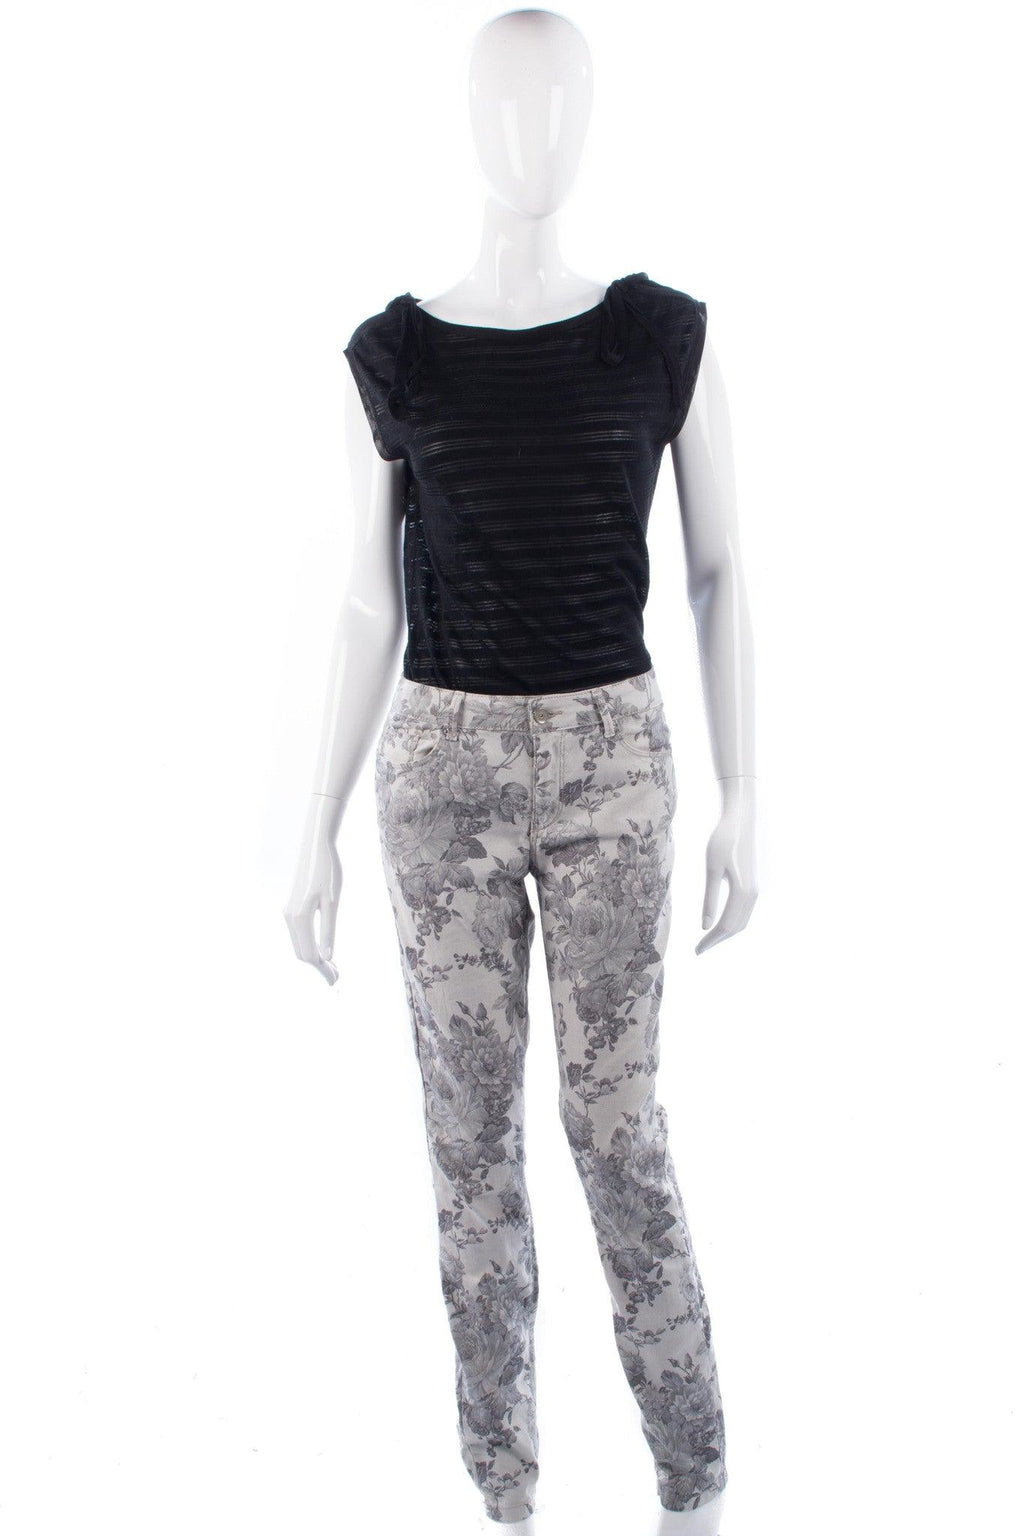 Esprit Jeans Grey with Floral Pattern Size 14